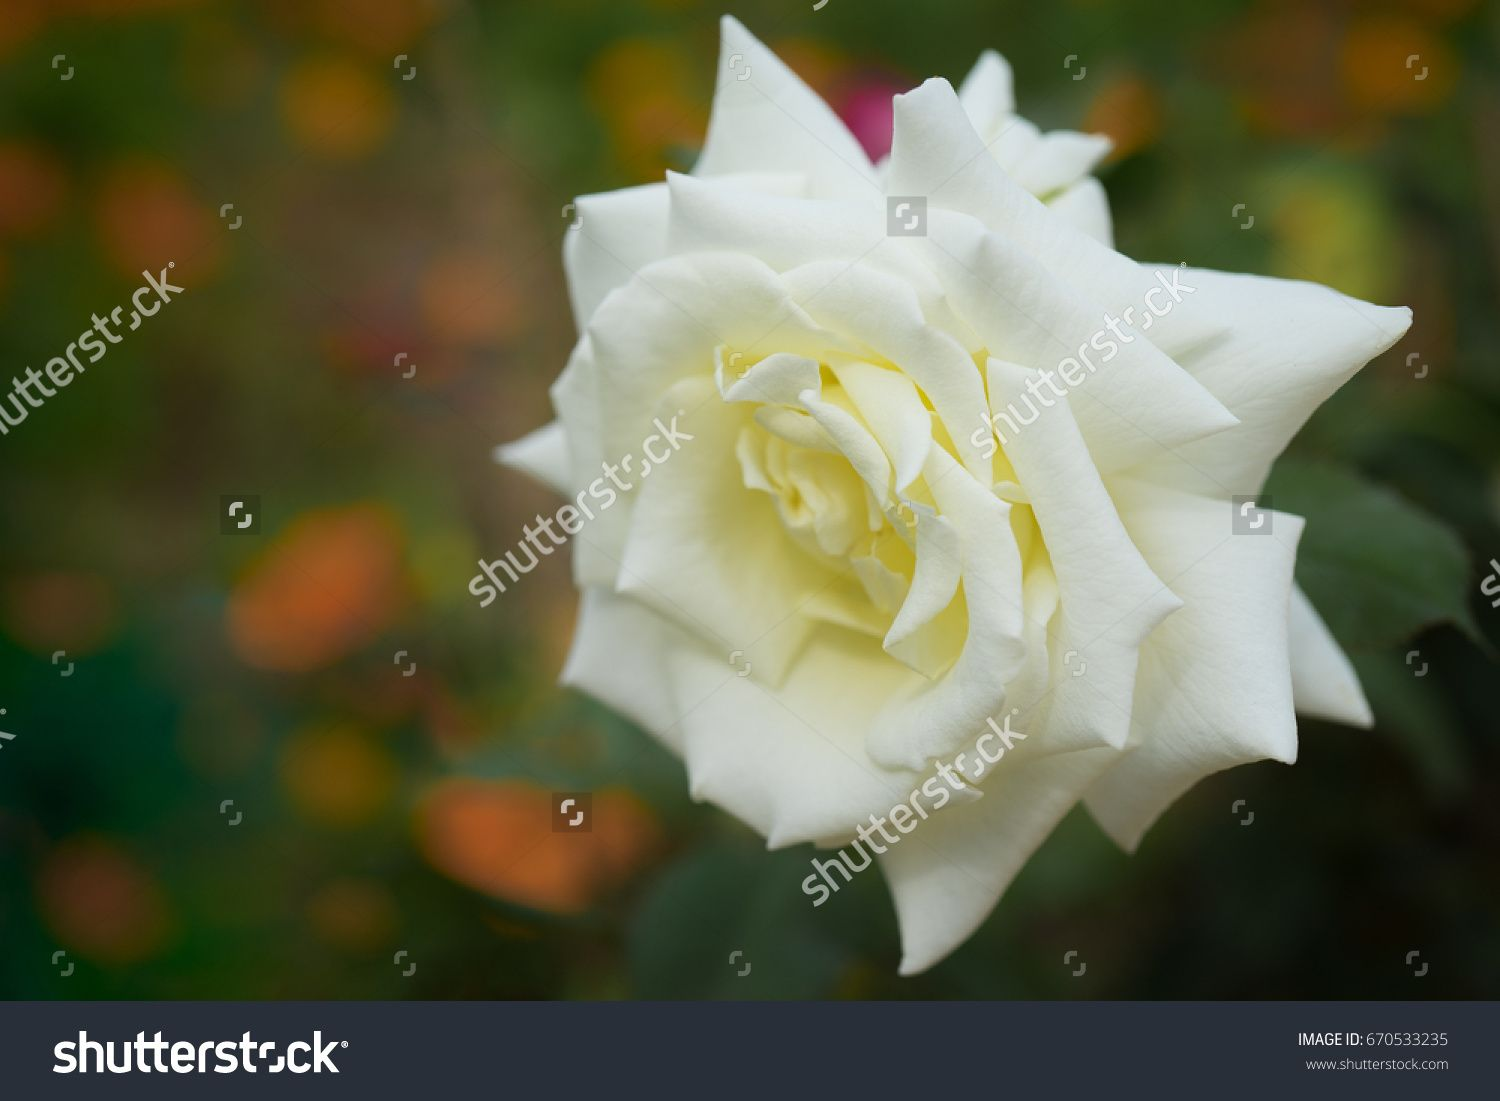 Beautiful White Rose In Full Bloom In The Flower Garden With A